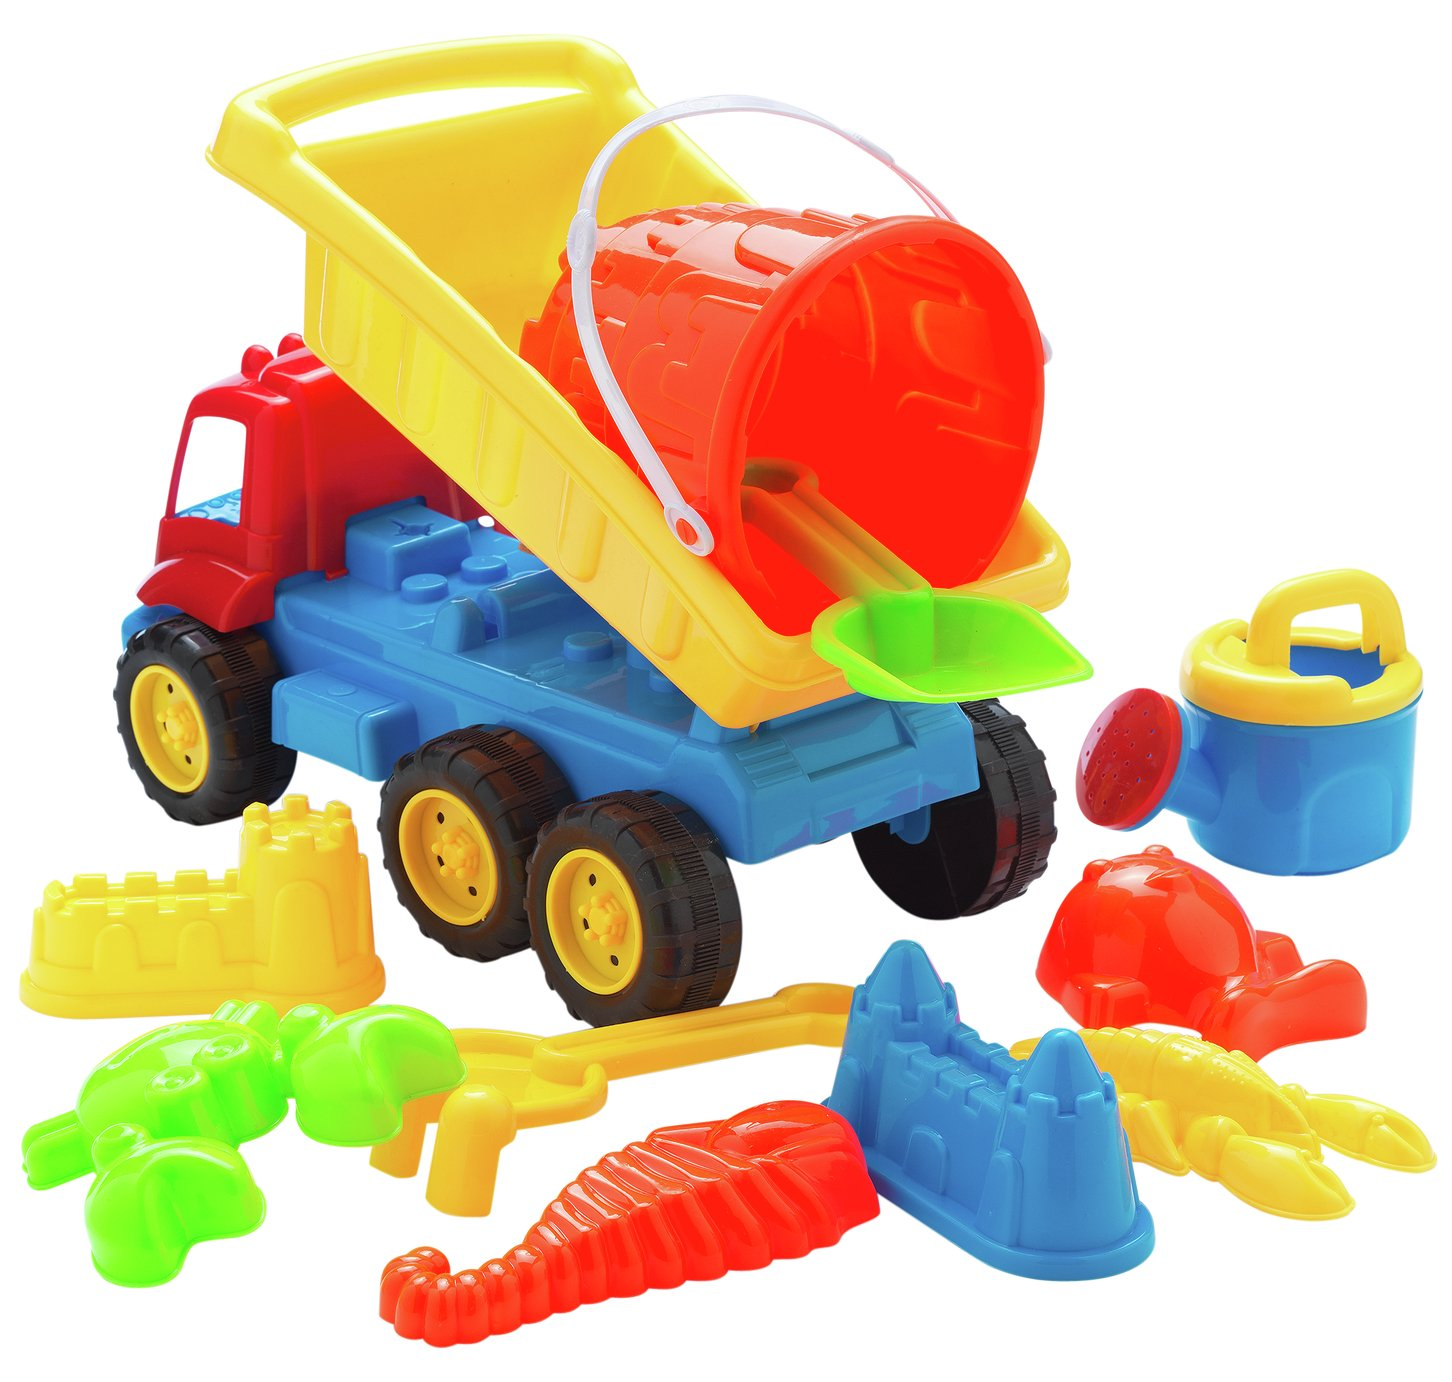 Image of Chad Valley 11 Pieces Sand Truck Bucket and Spade Set